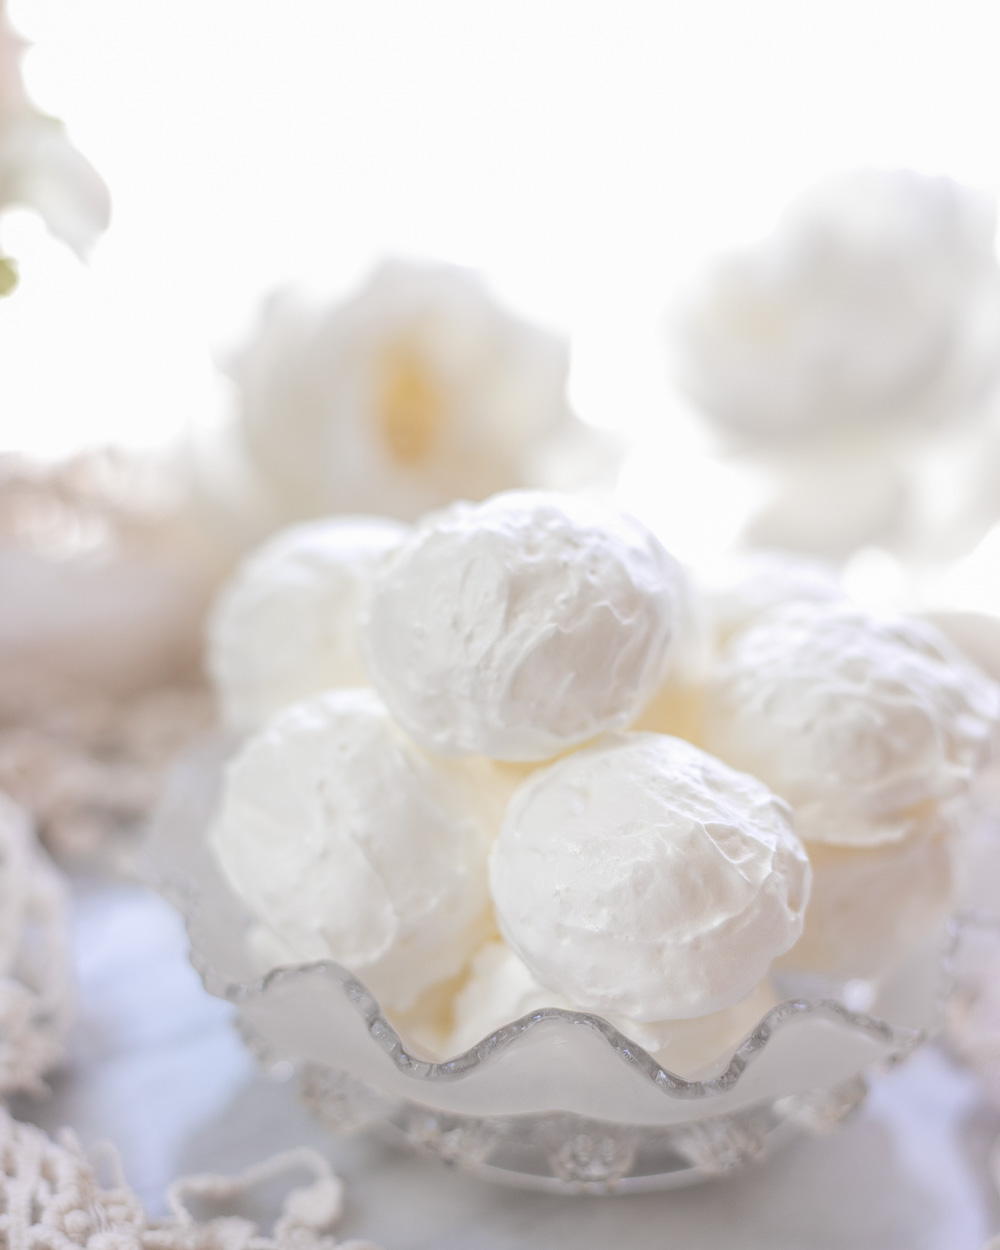 The Healthy Low-Sugar Meringue Cookies are made with half of the sugar that's usually needed to bake perfectly crispy and crunchy meringues! All-natural and indulgent, the Low-Sugar Meringues are higher in protein and significantly lower in sugar and calories than the traditional recipe!